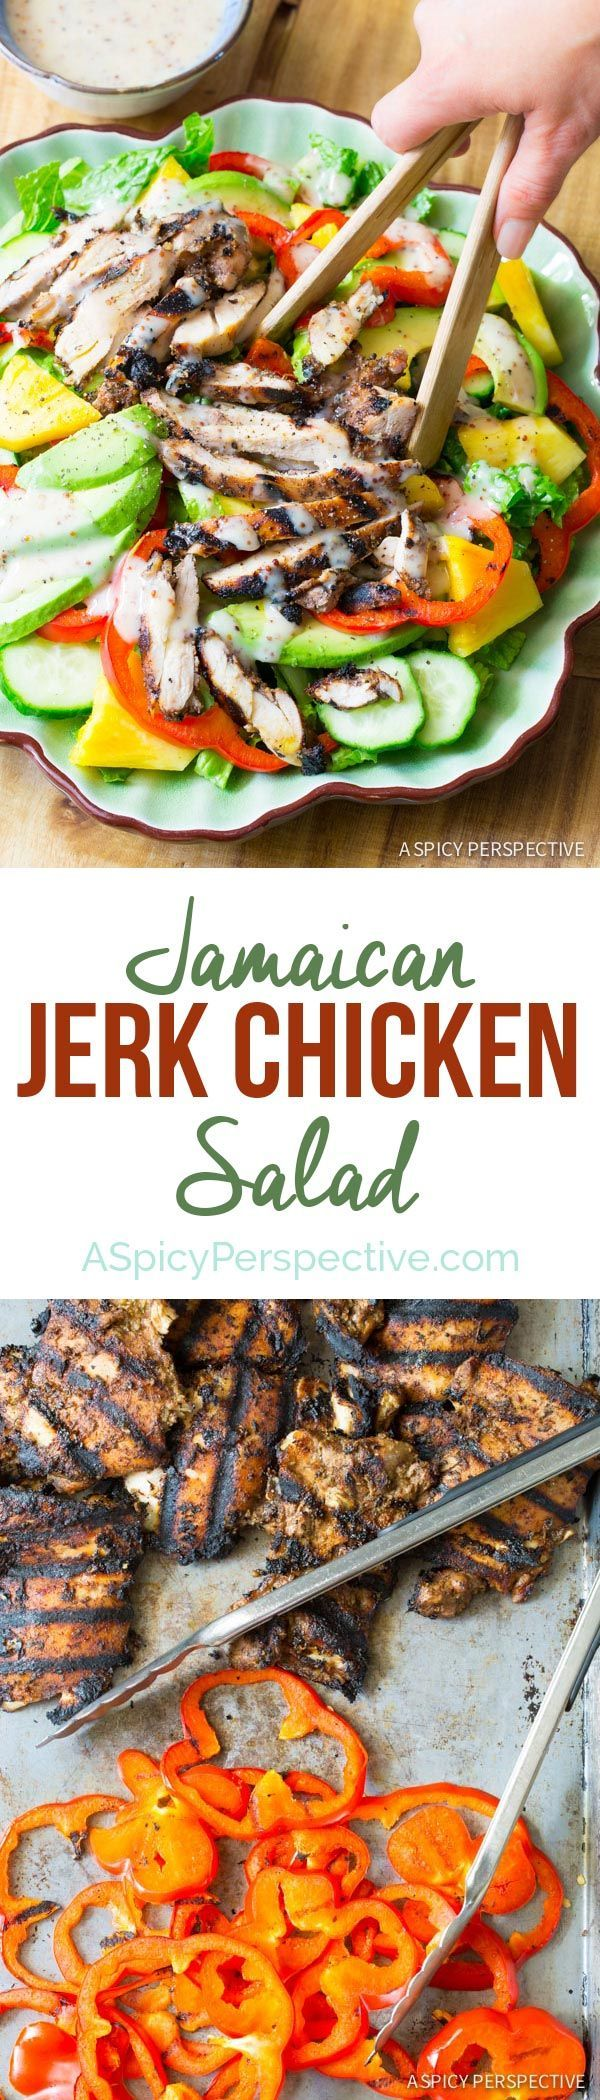 121 best jamaican food recipes images on pinterest cooking food easy jamaican jerk chicken salad on aspicyperspective forumfinder Gallery